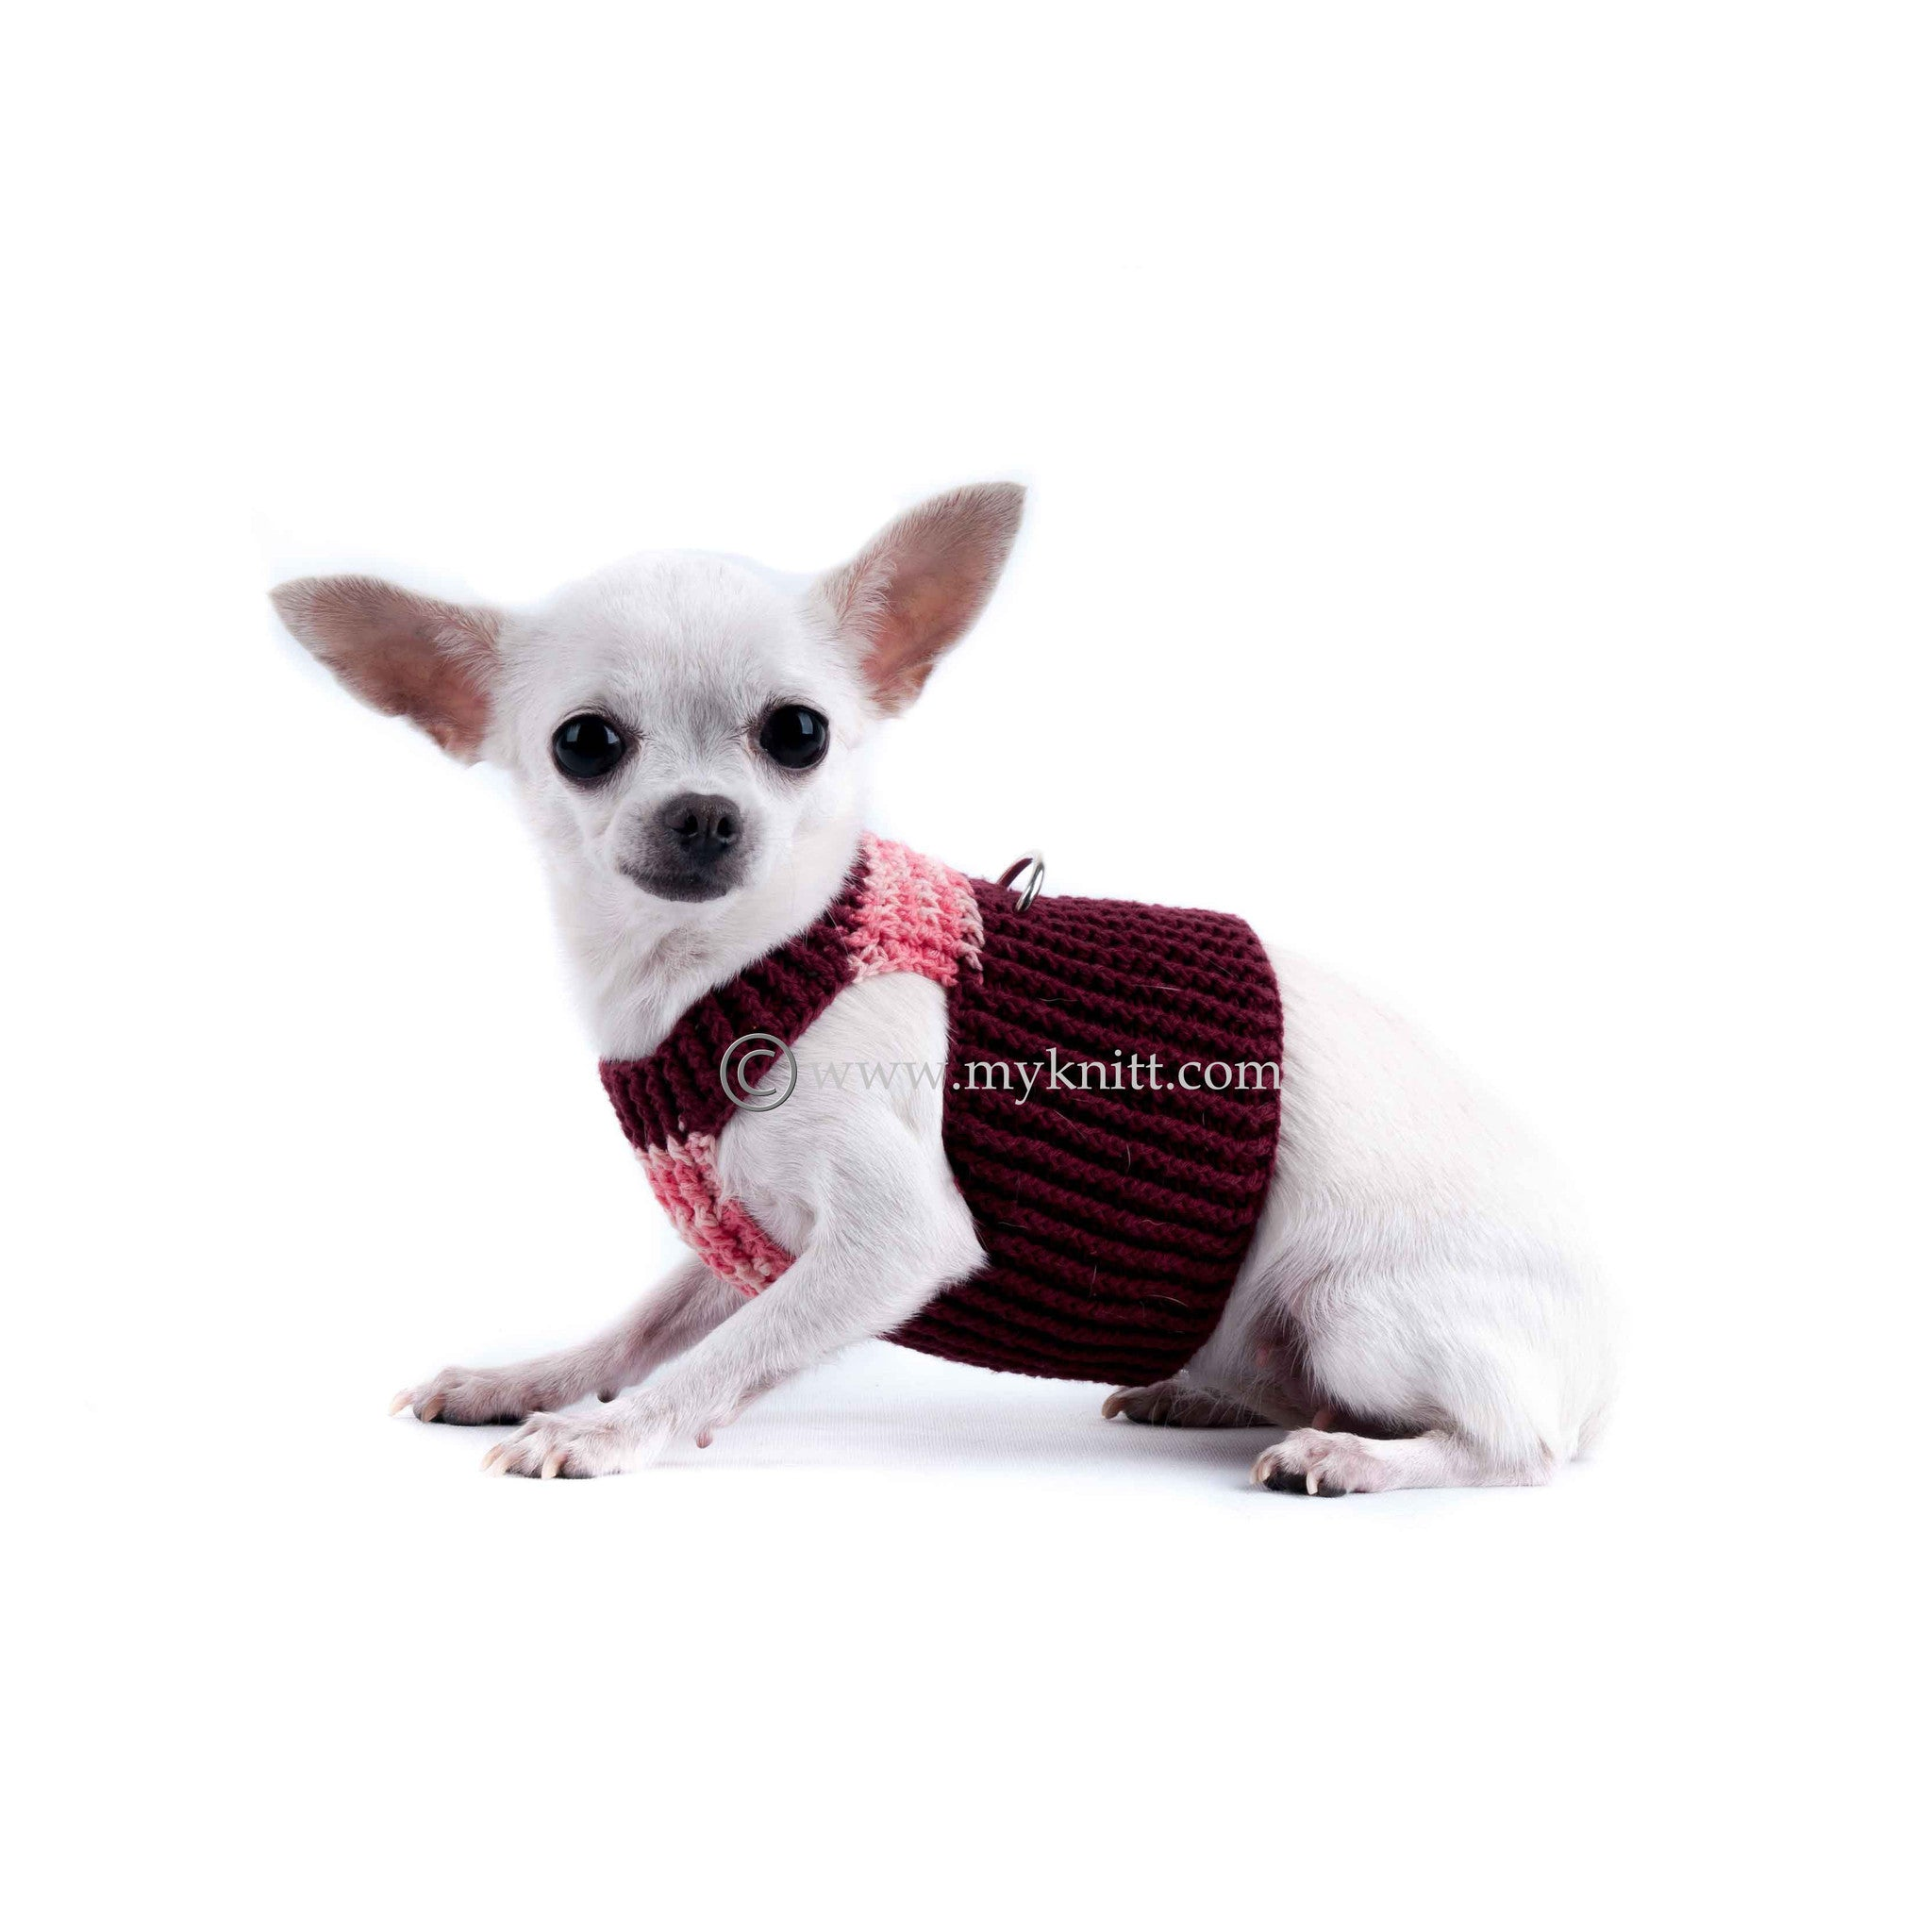 DH7_1?v=1456841915 soft comfortable pink burgundy hand crochet dog harness dh7 myknitt